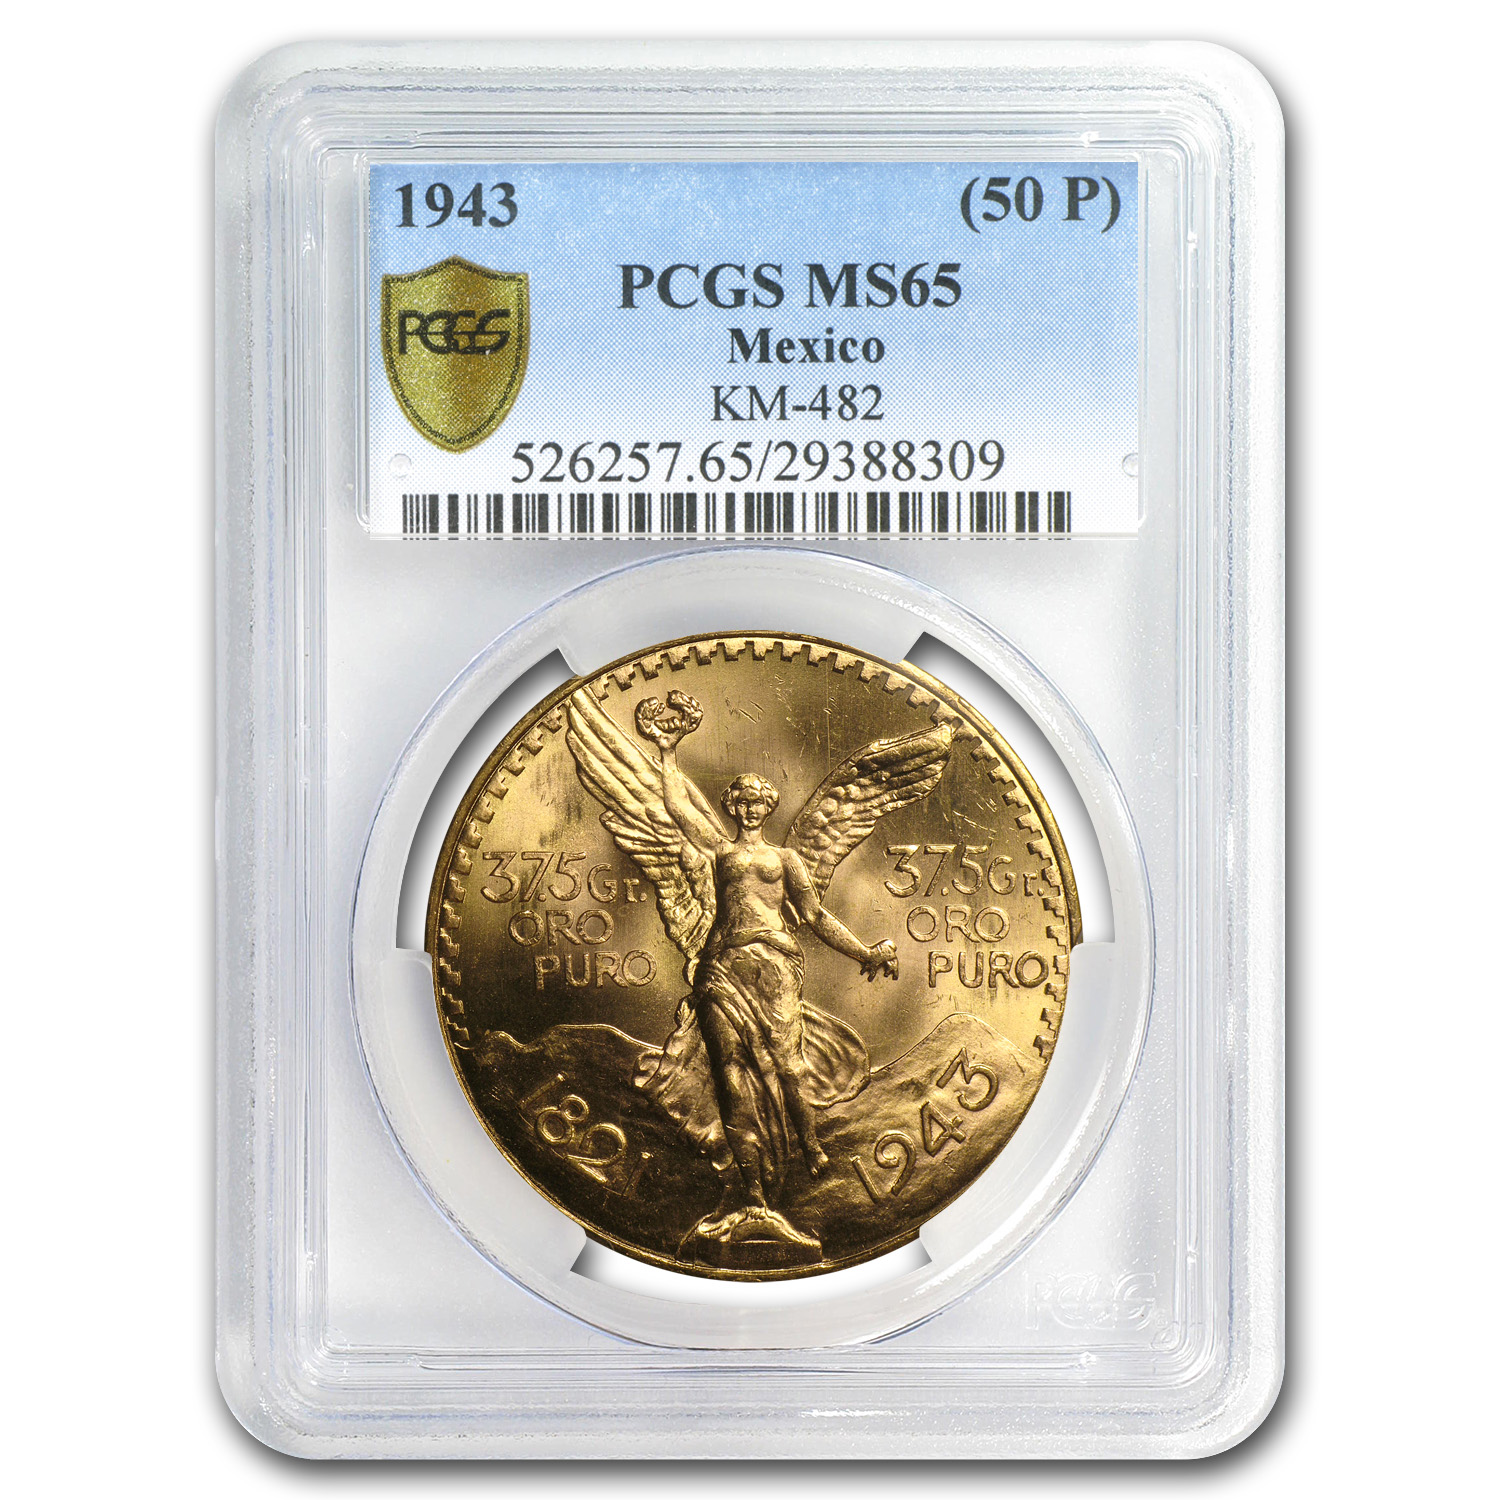 Mexico 1943 50 Pesos Gold MS-65 PCGS (Secure Plus)